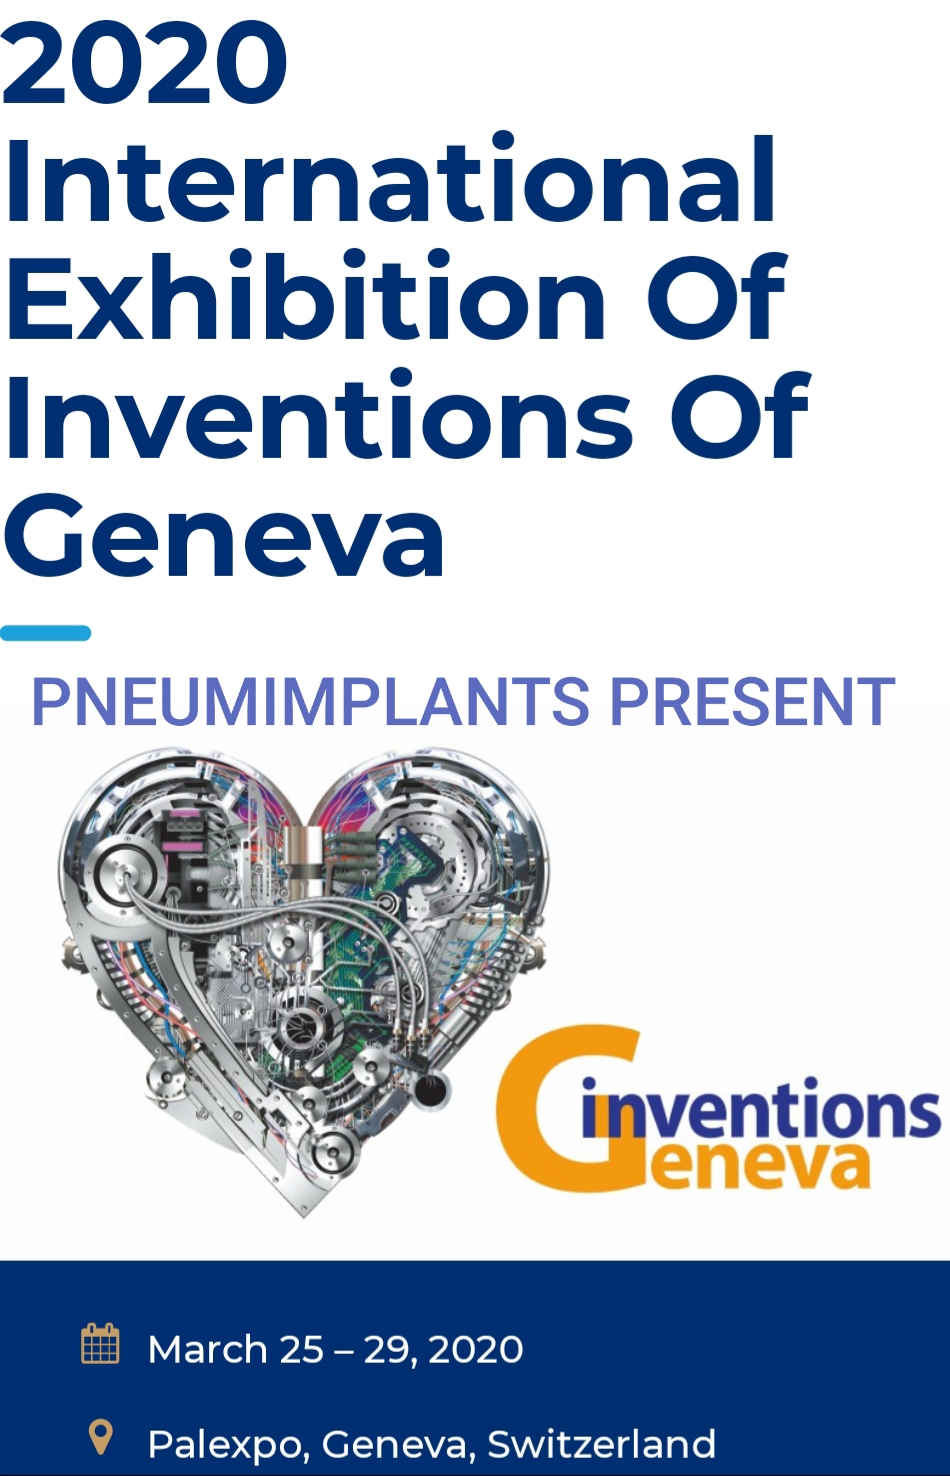 Exibition of inventions